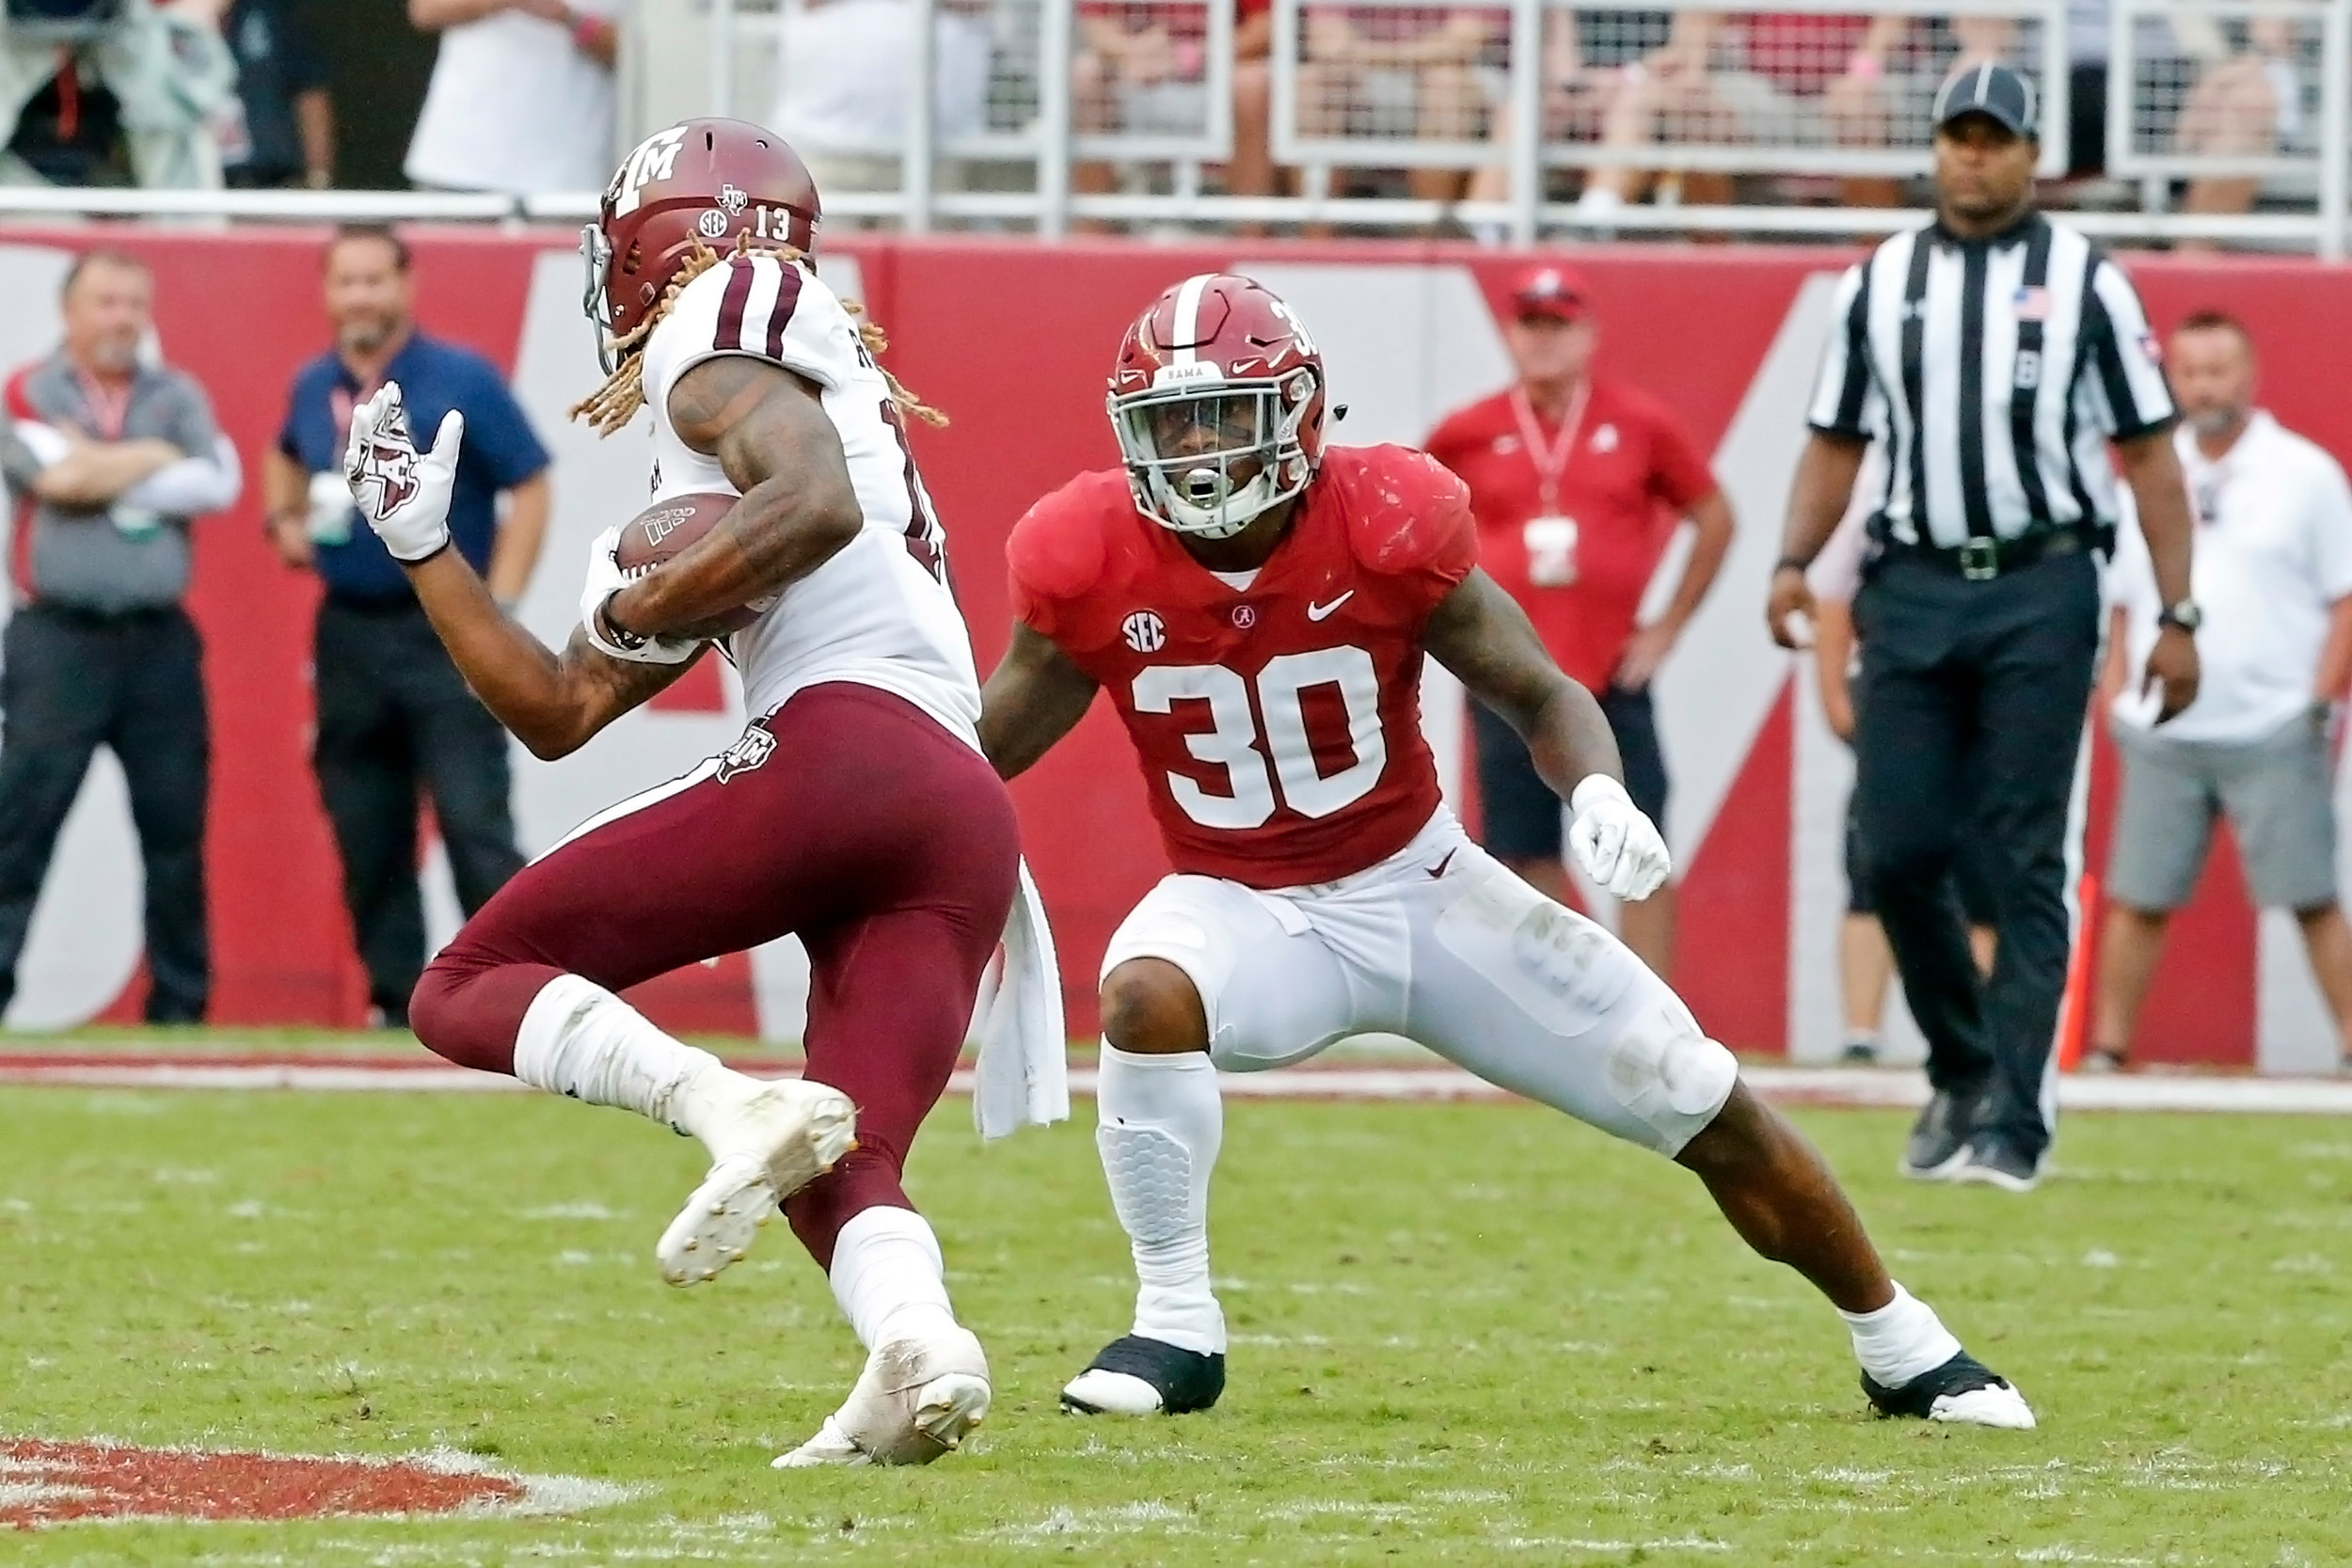 Alabama Crimson Tide linebacker Mack Wilson (30) prepares to make tackle during the game with against the Texas A&M Aggies at Bryant-Denny Stadium.  Jason Clark / Daily Mountain Eagle